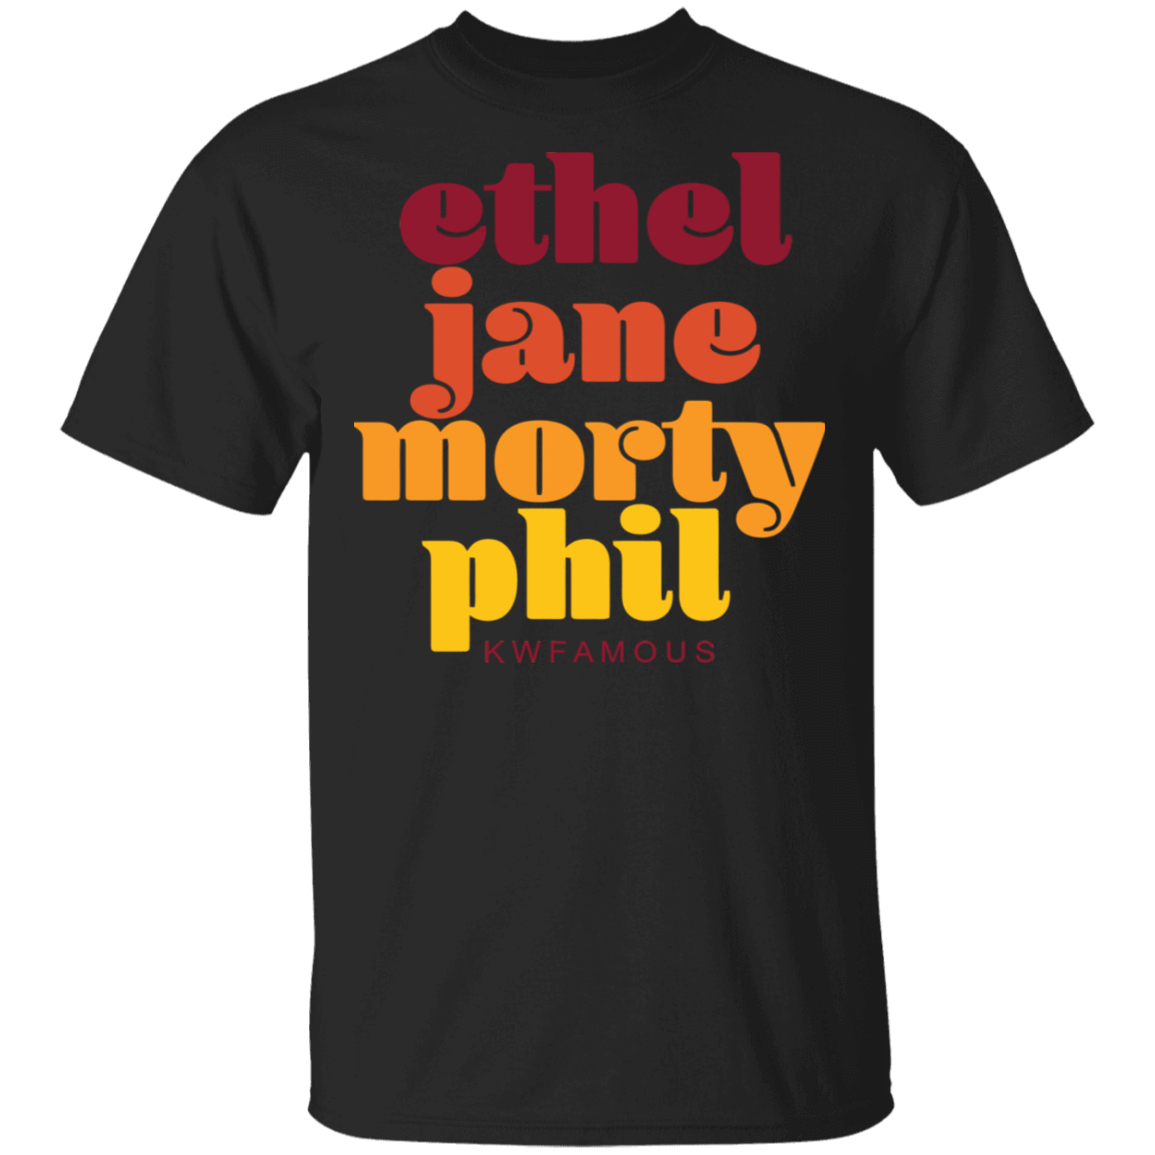 Kwfamous Squad Ethel Jane Morty Phil T-Shirts, Hoodies, Tank 22-113-79271417-252 - Tee Ript